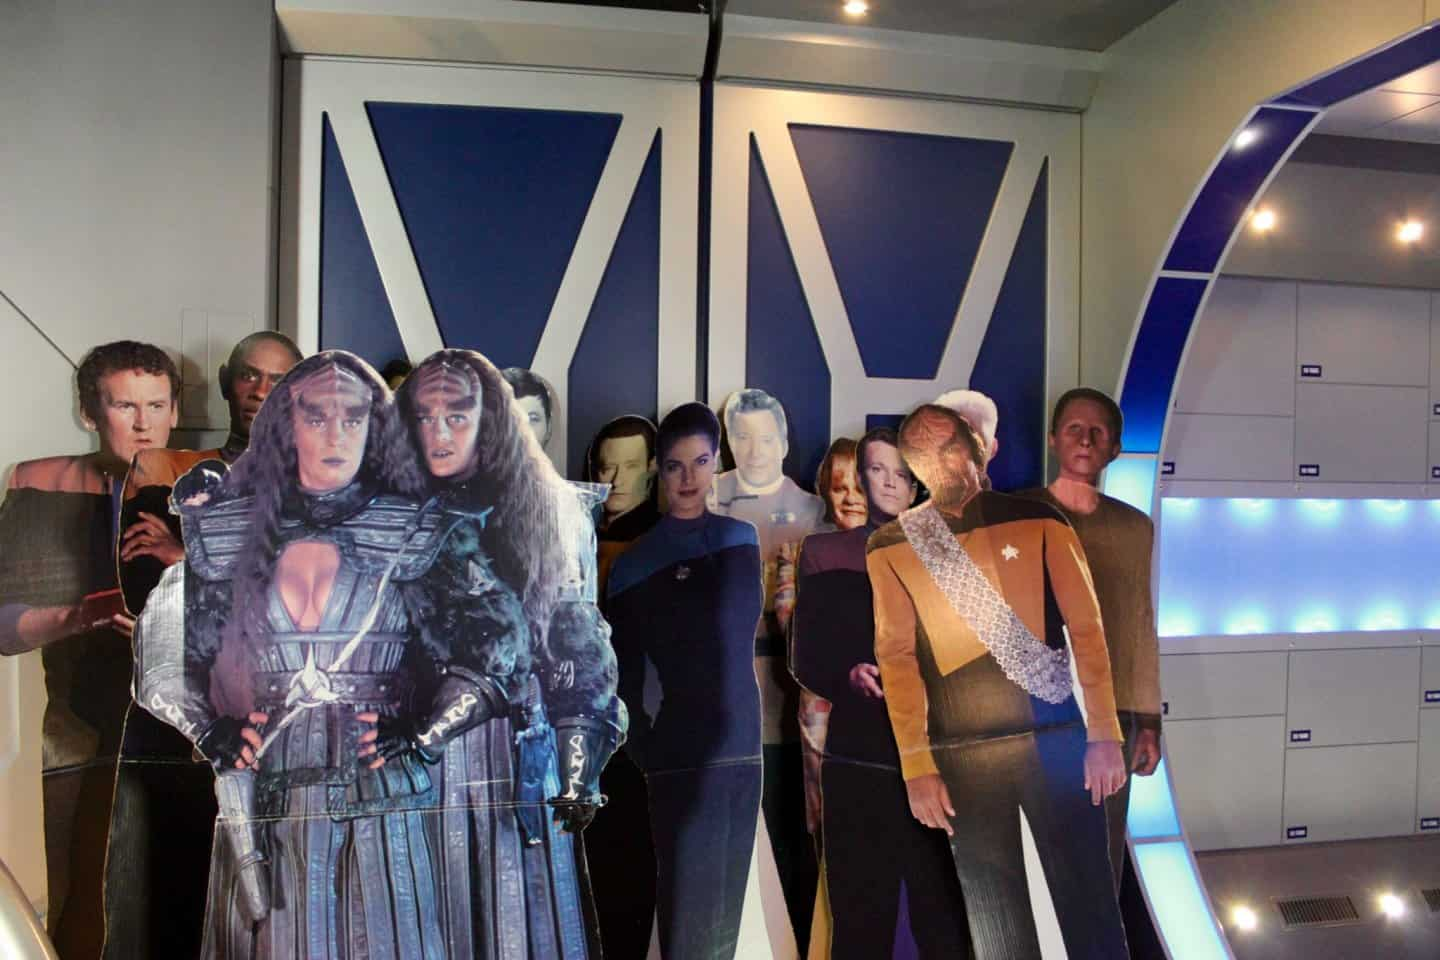 20 Star Trek Cardboard Cutouts in Vulcan Alberta of various characters from several different Star Trek series such as Worf and Data. All cardboard cutouts are standing up an leaning against two sliding doors with blue panels and white lined design mimicking a star trek ship interior.